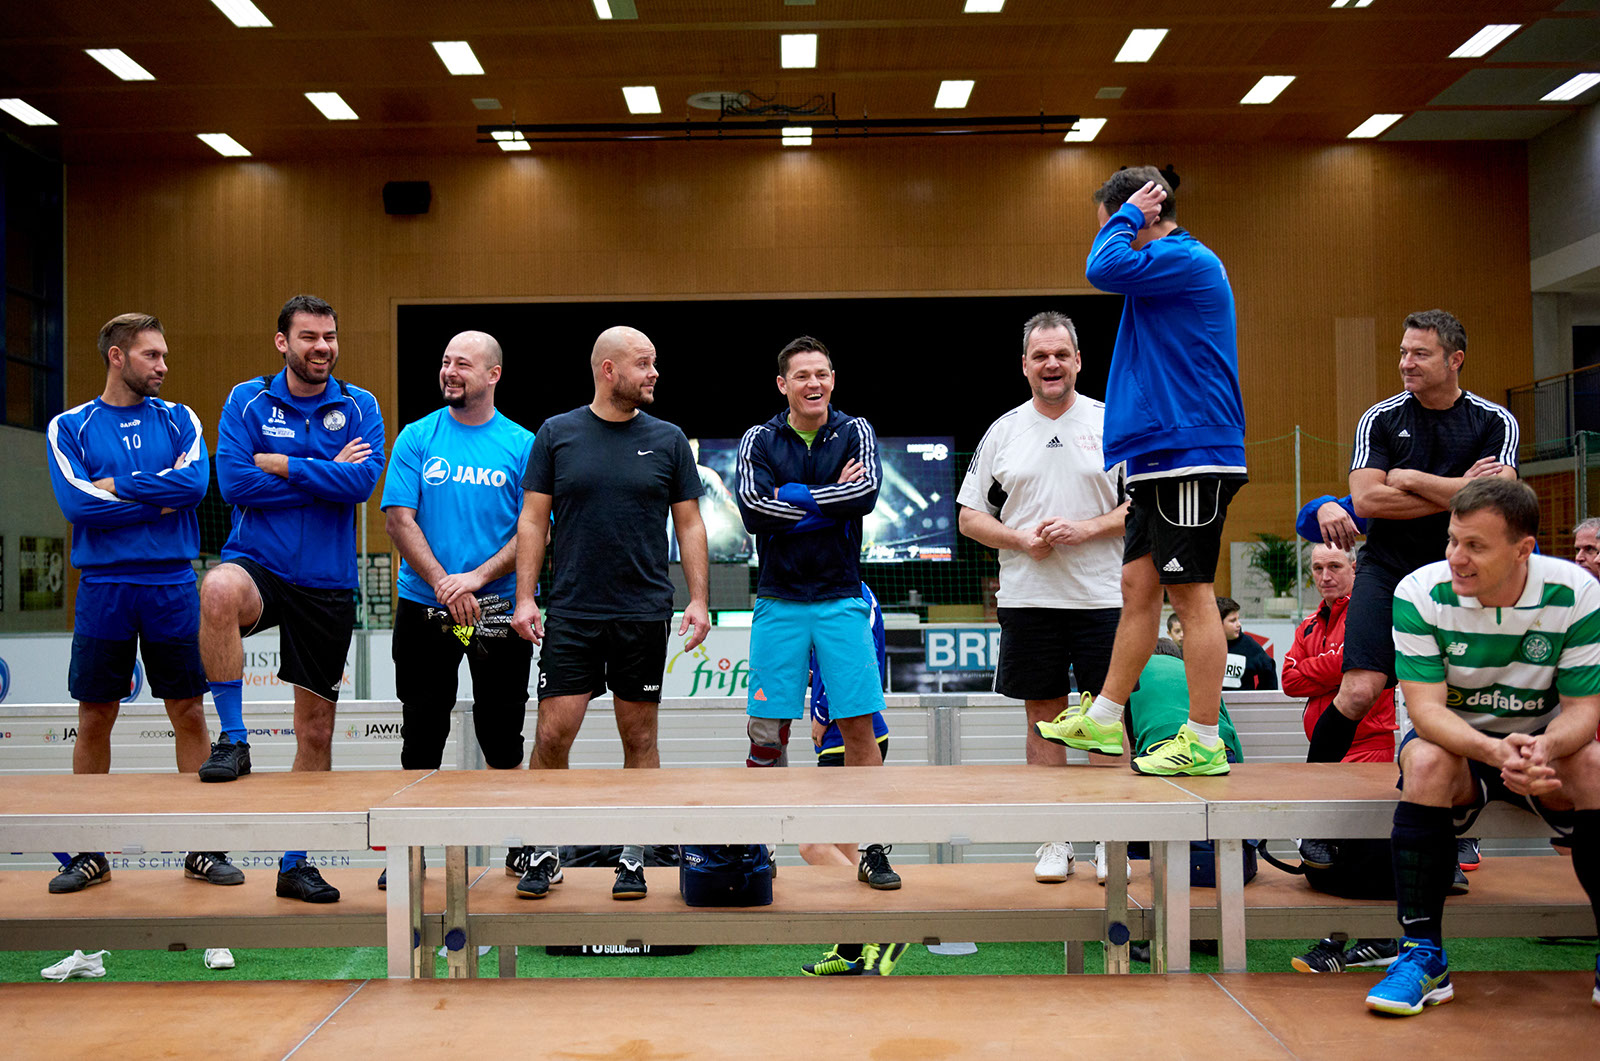 Bodensee-Cup_20171110_201425.jpg